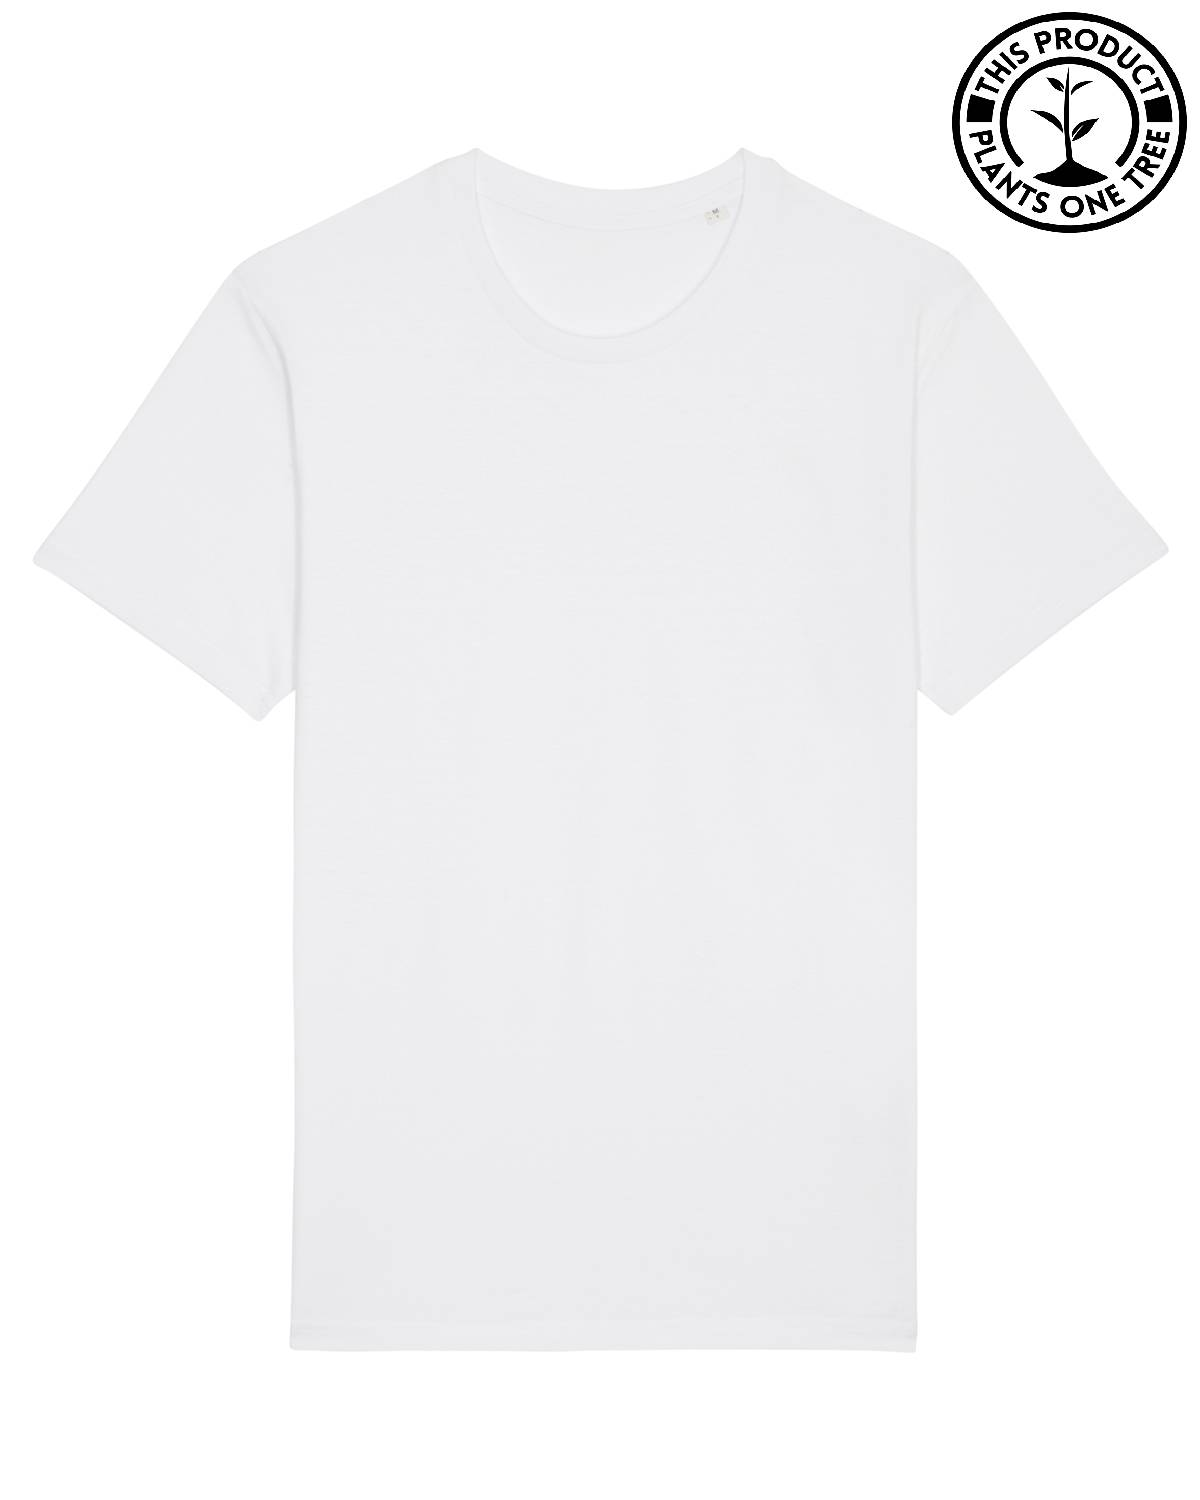 Basic Unisex T-shirt White